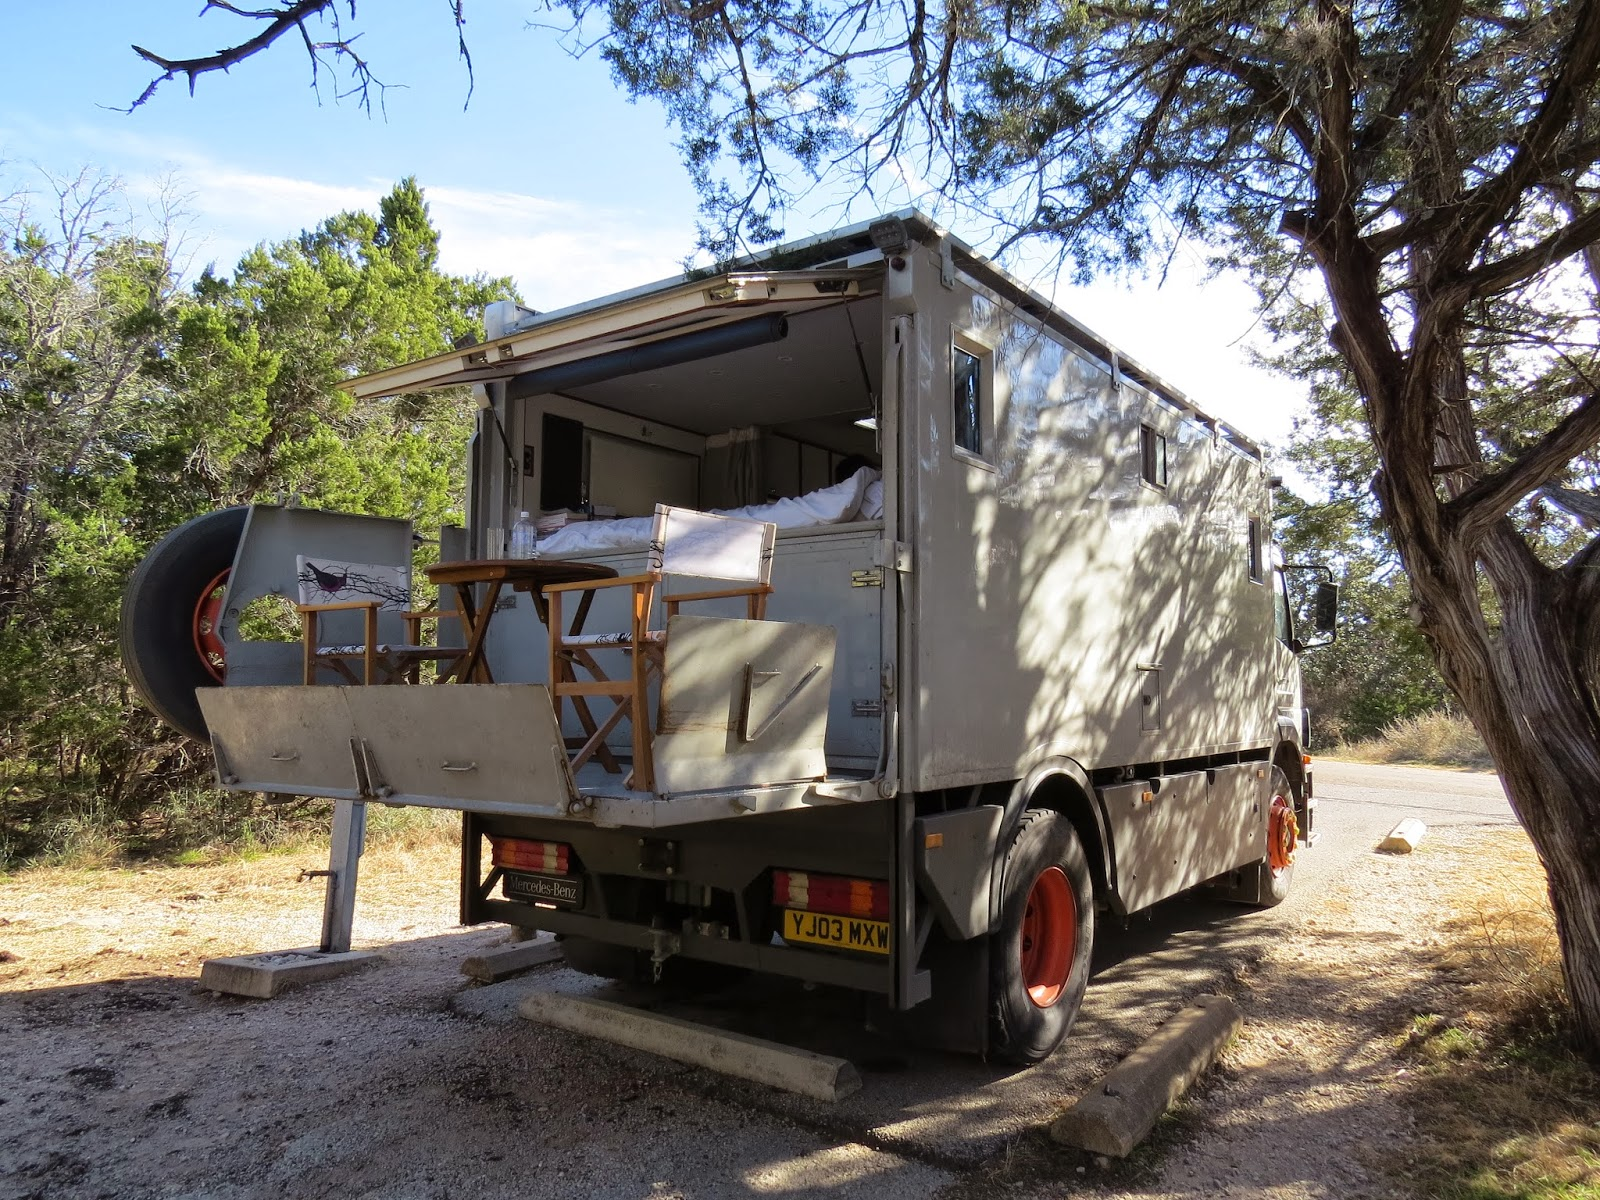 A mercedes 1823 overland motorhome with a dining table and chairs set up on the tail gate